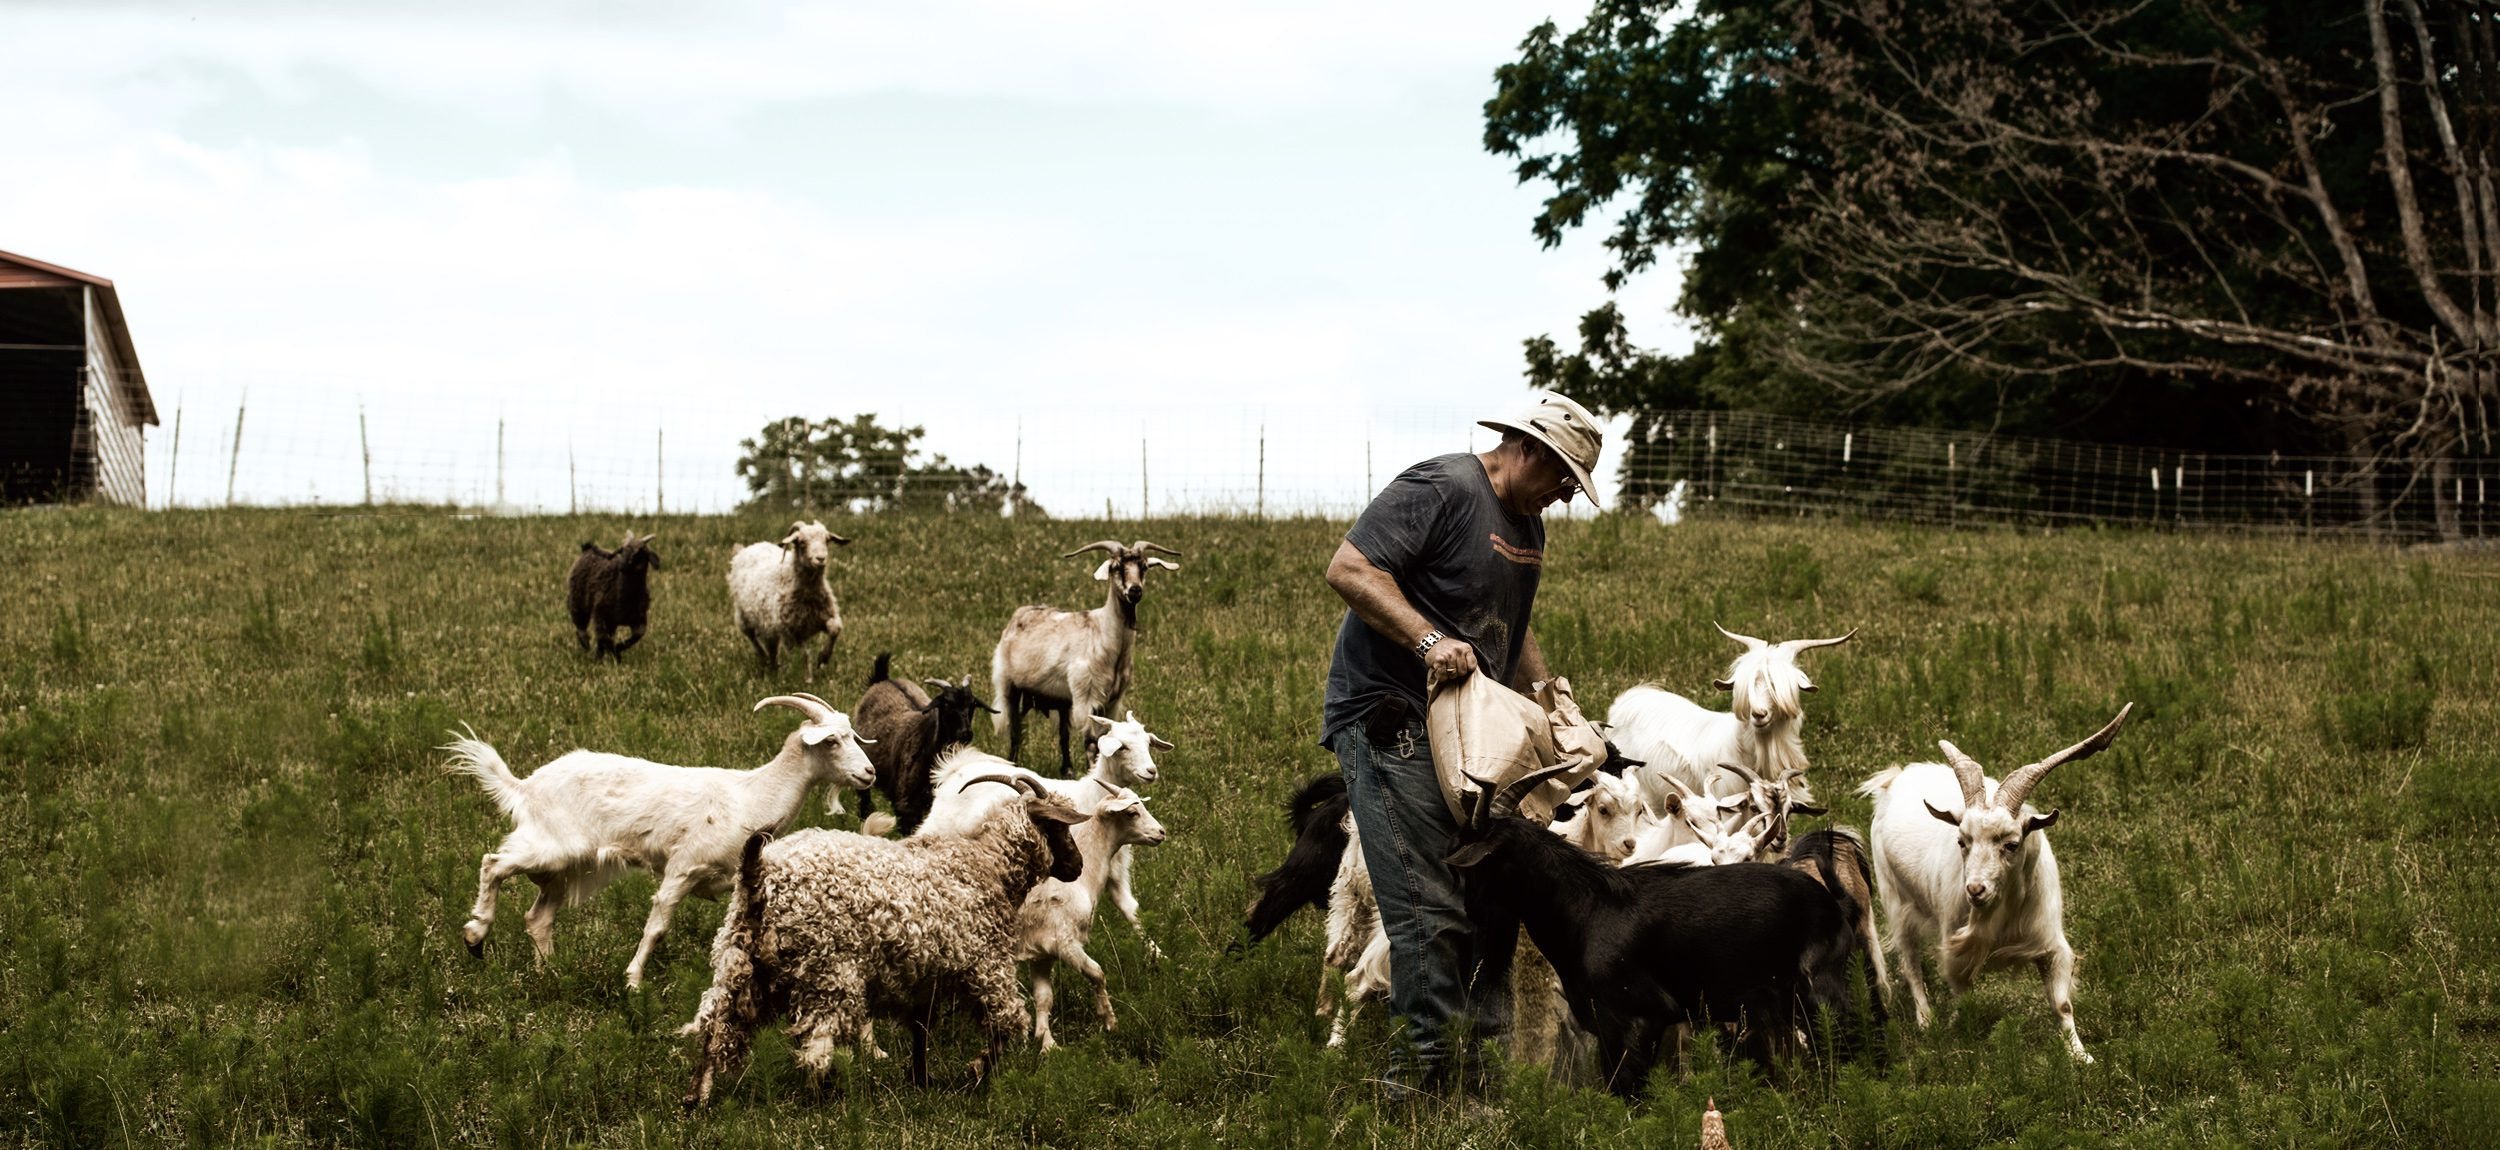 WhyNot Farm Pastured Breeds